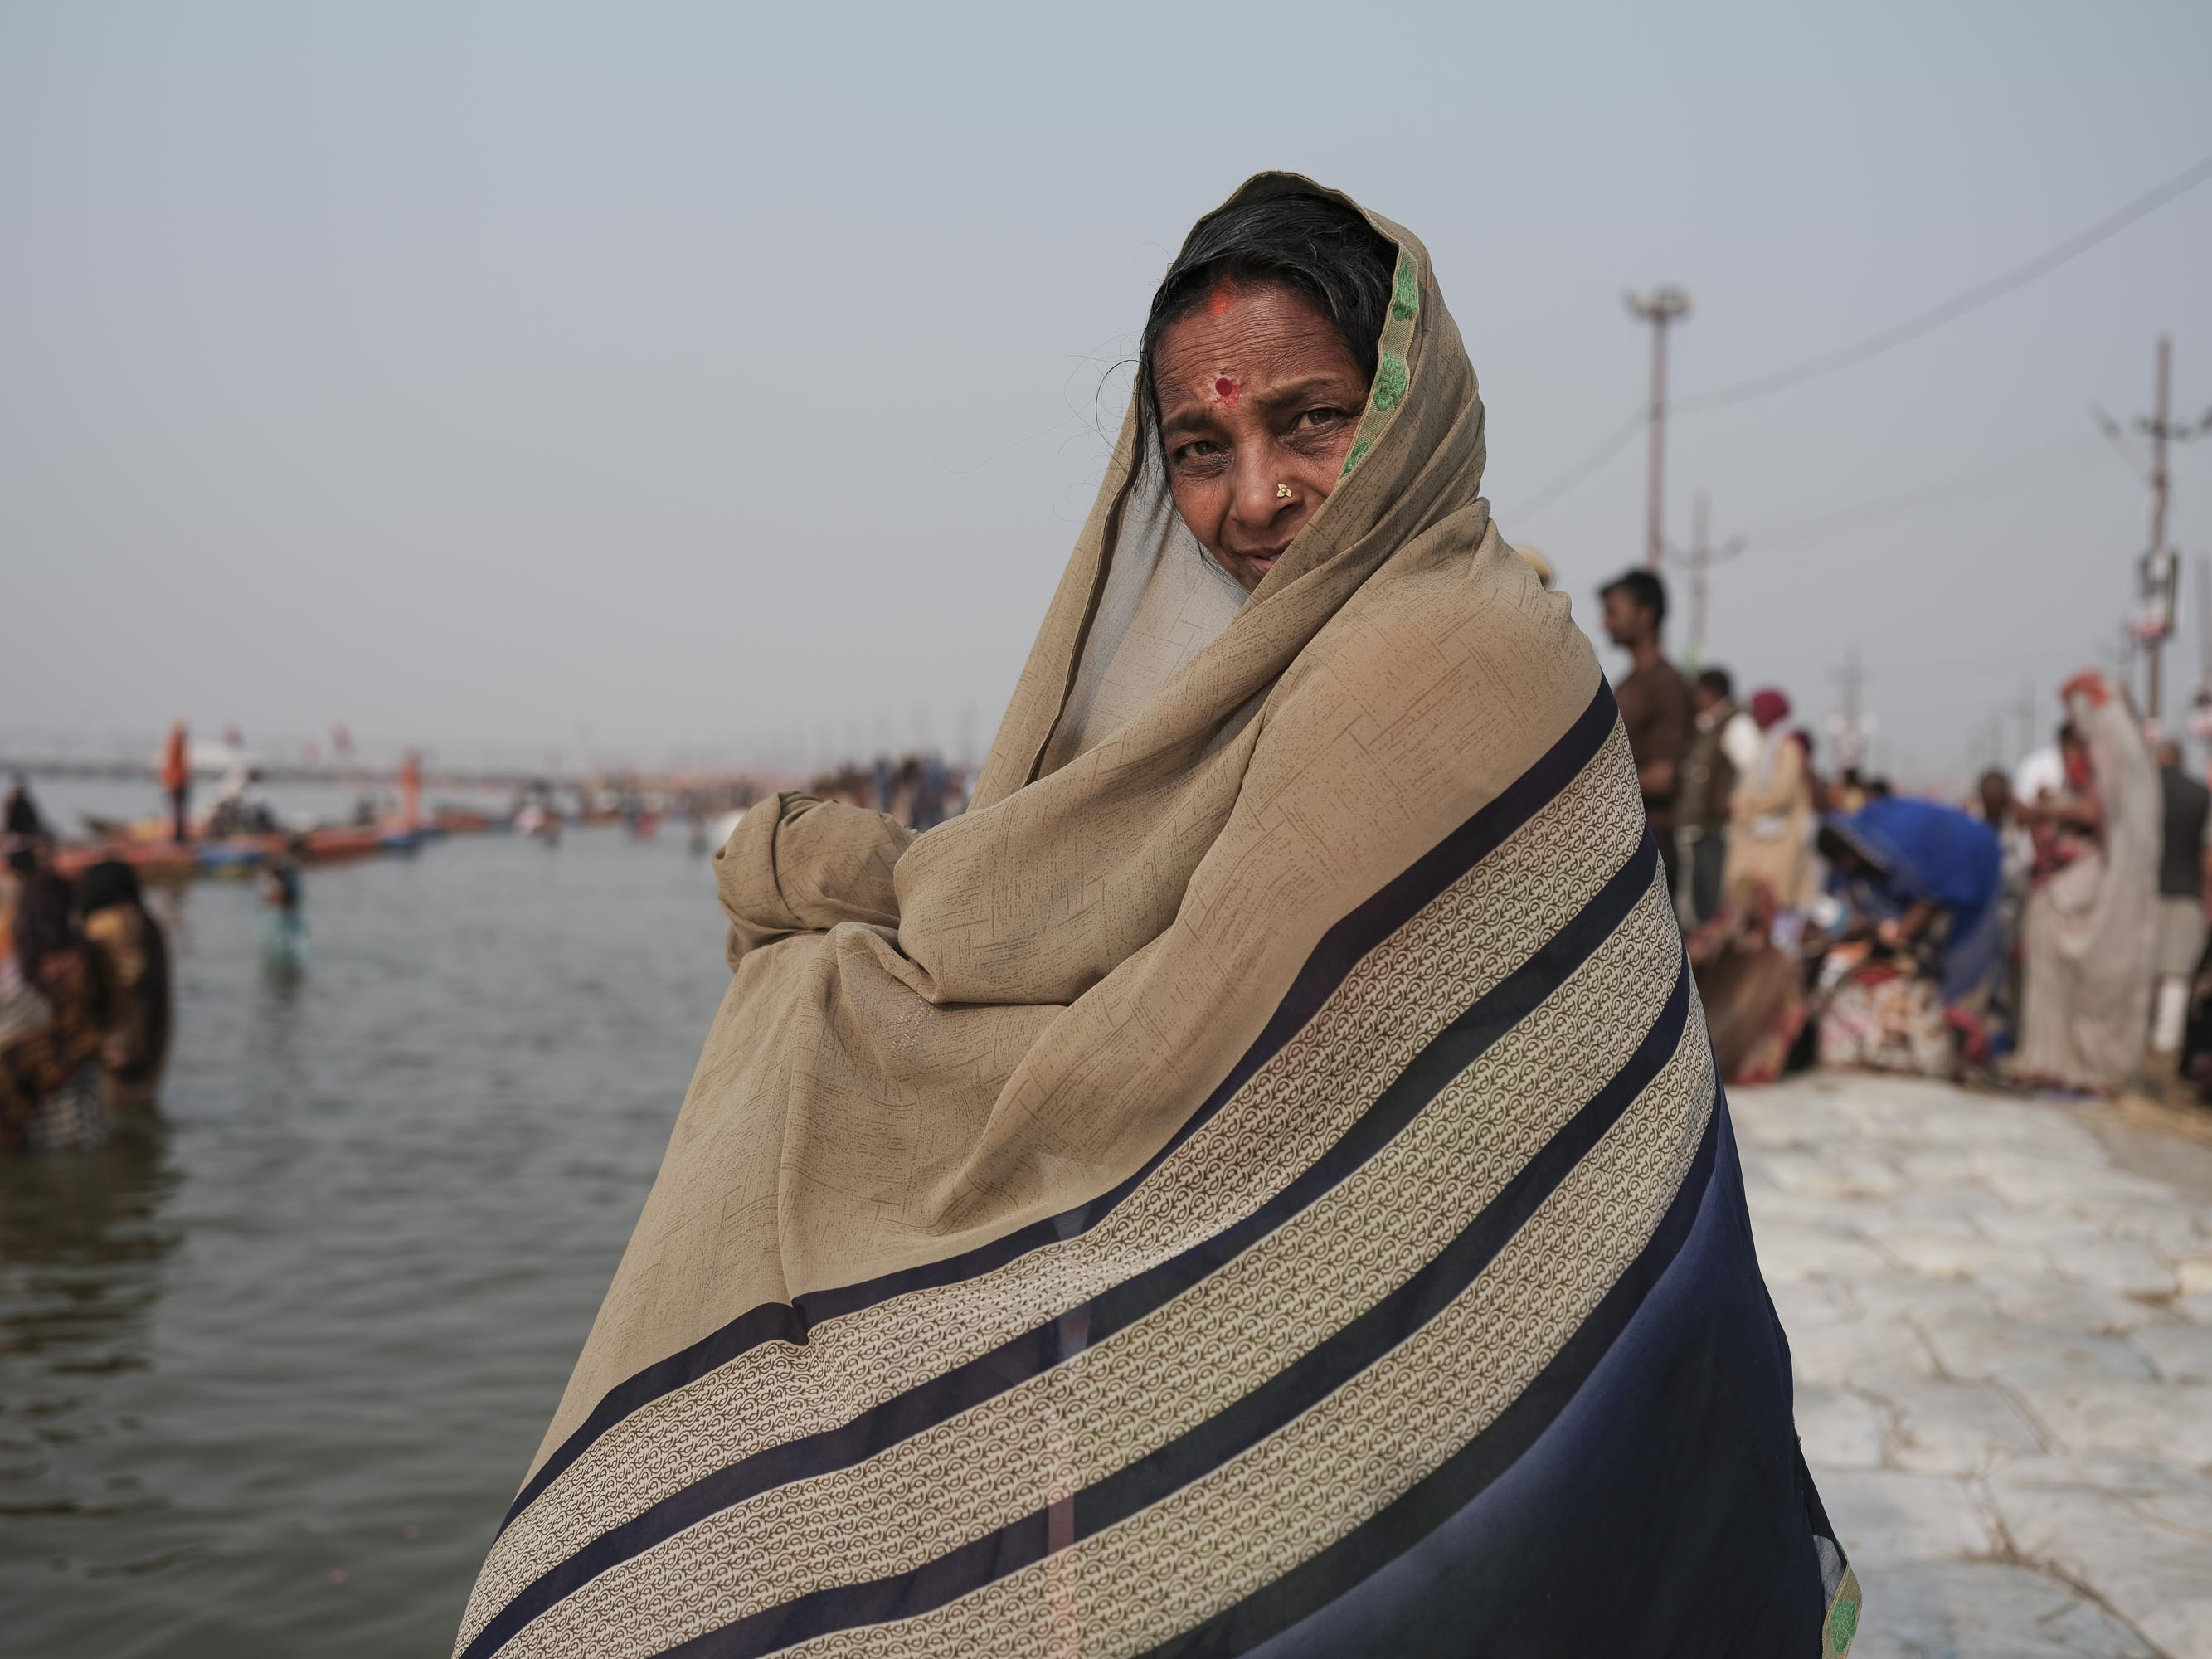 women sari bath pilgrims Kumbh mela 2019 India Allahabad Prayagraj Ardh hindu religious Festival event rivers photographer jose jeuland photography